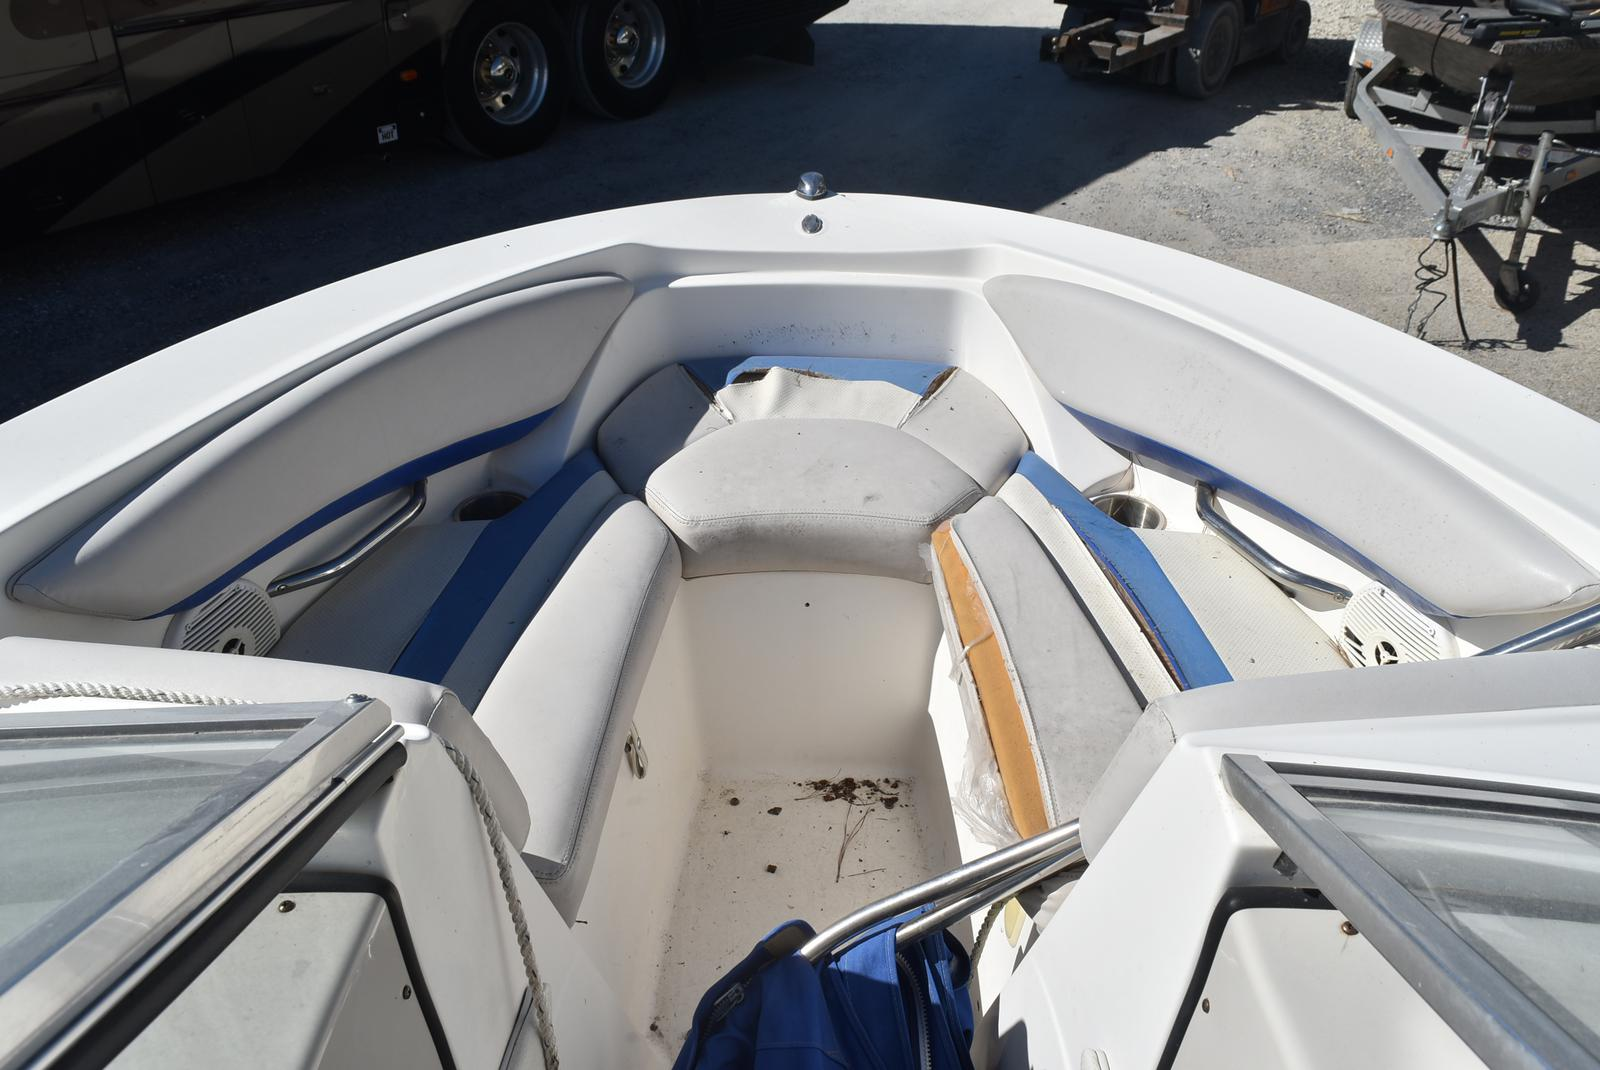 2007 Larson boat for sale, model of the boat is Senza 186 & Image # 13 of 15